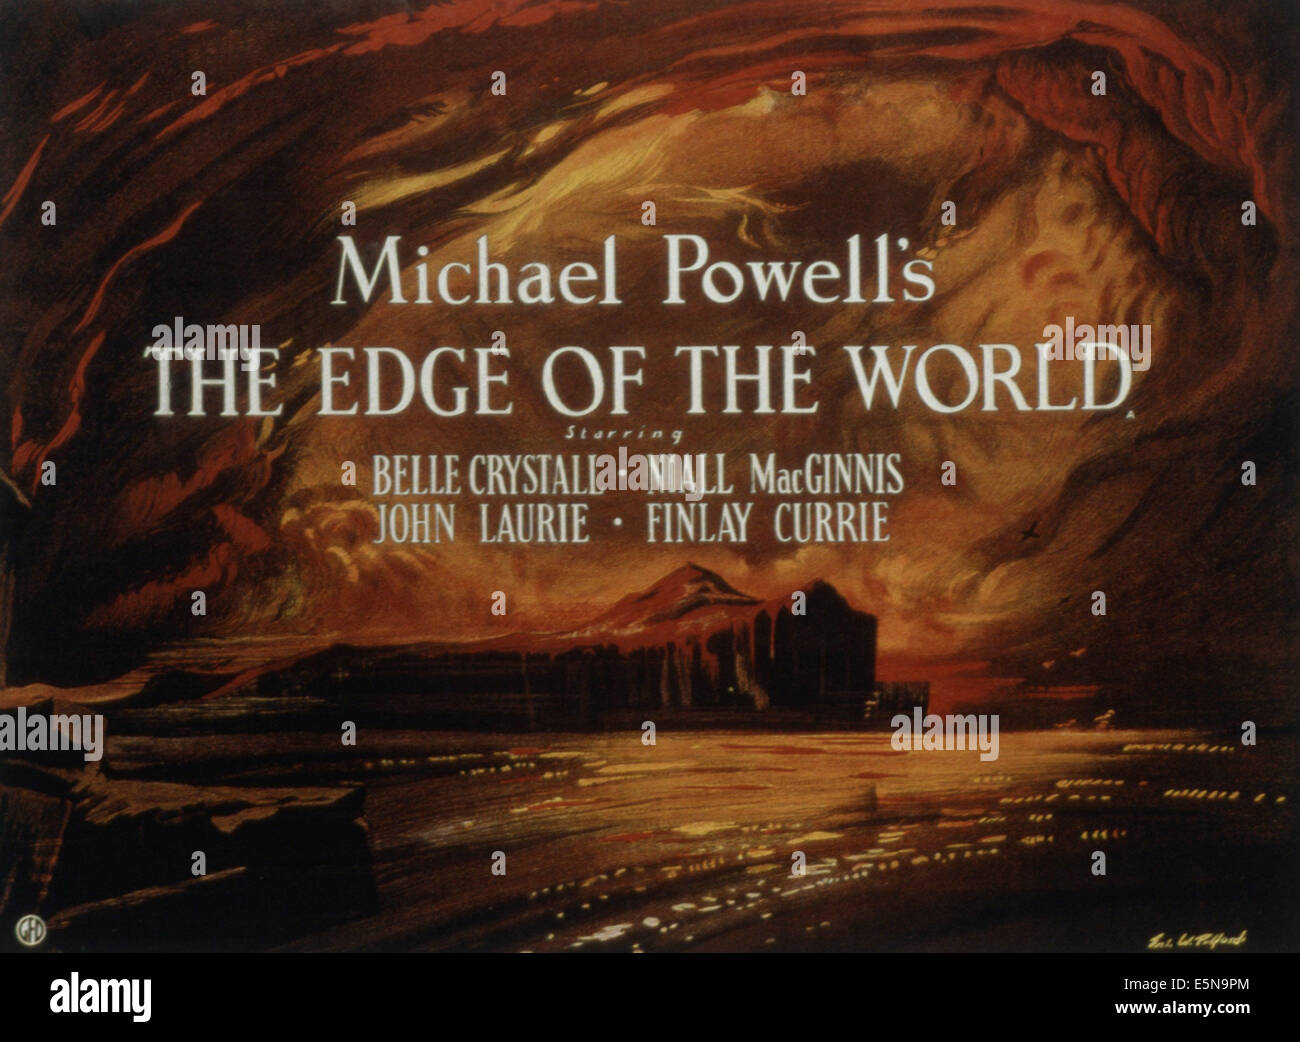 THE EDGE OF THE WORLD, 1937 - Stock Image